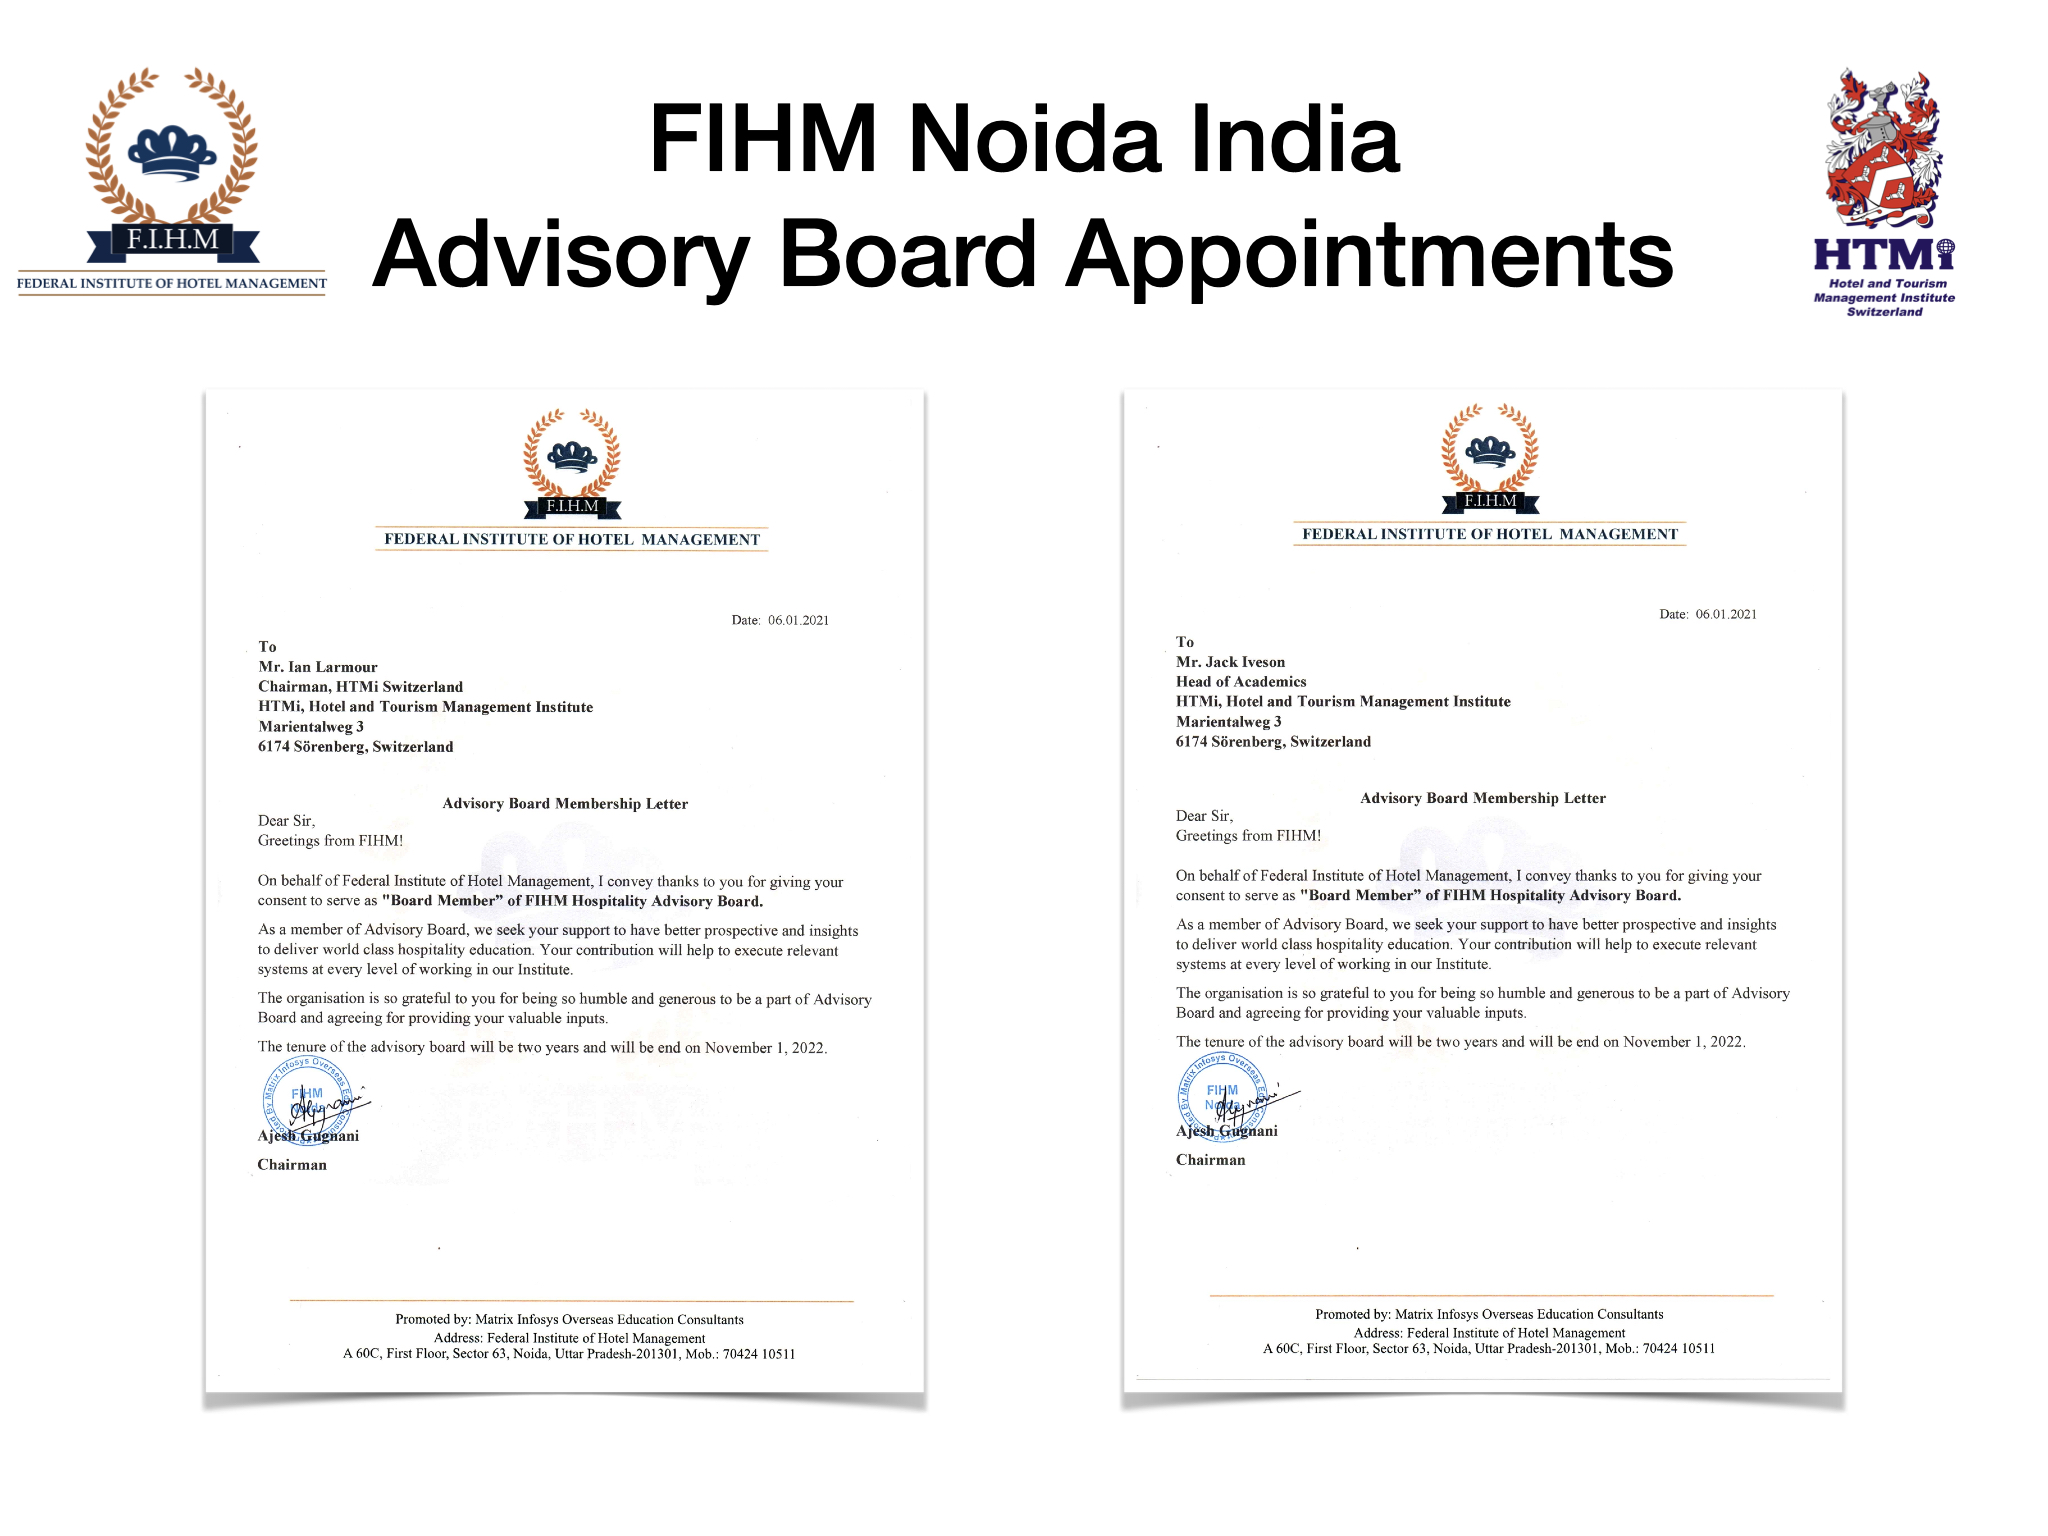 FIHM Noida India, Advisory Board Appointments